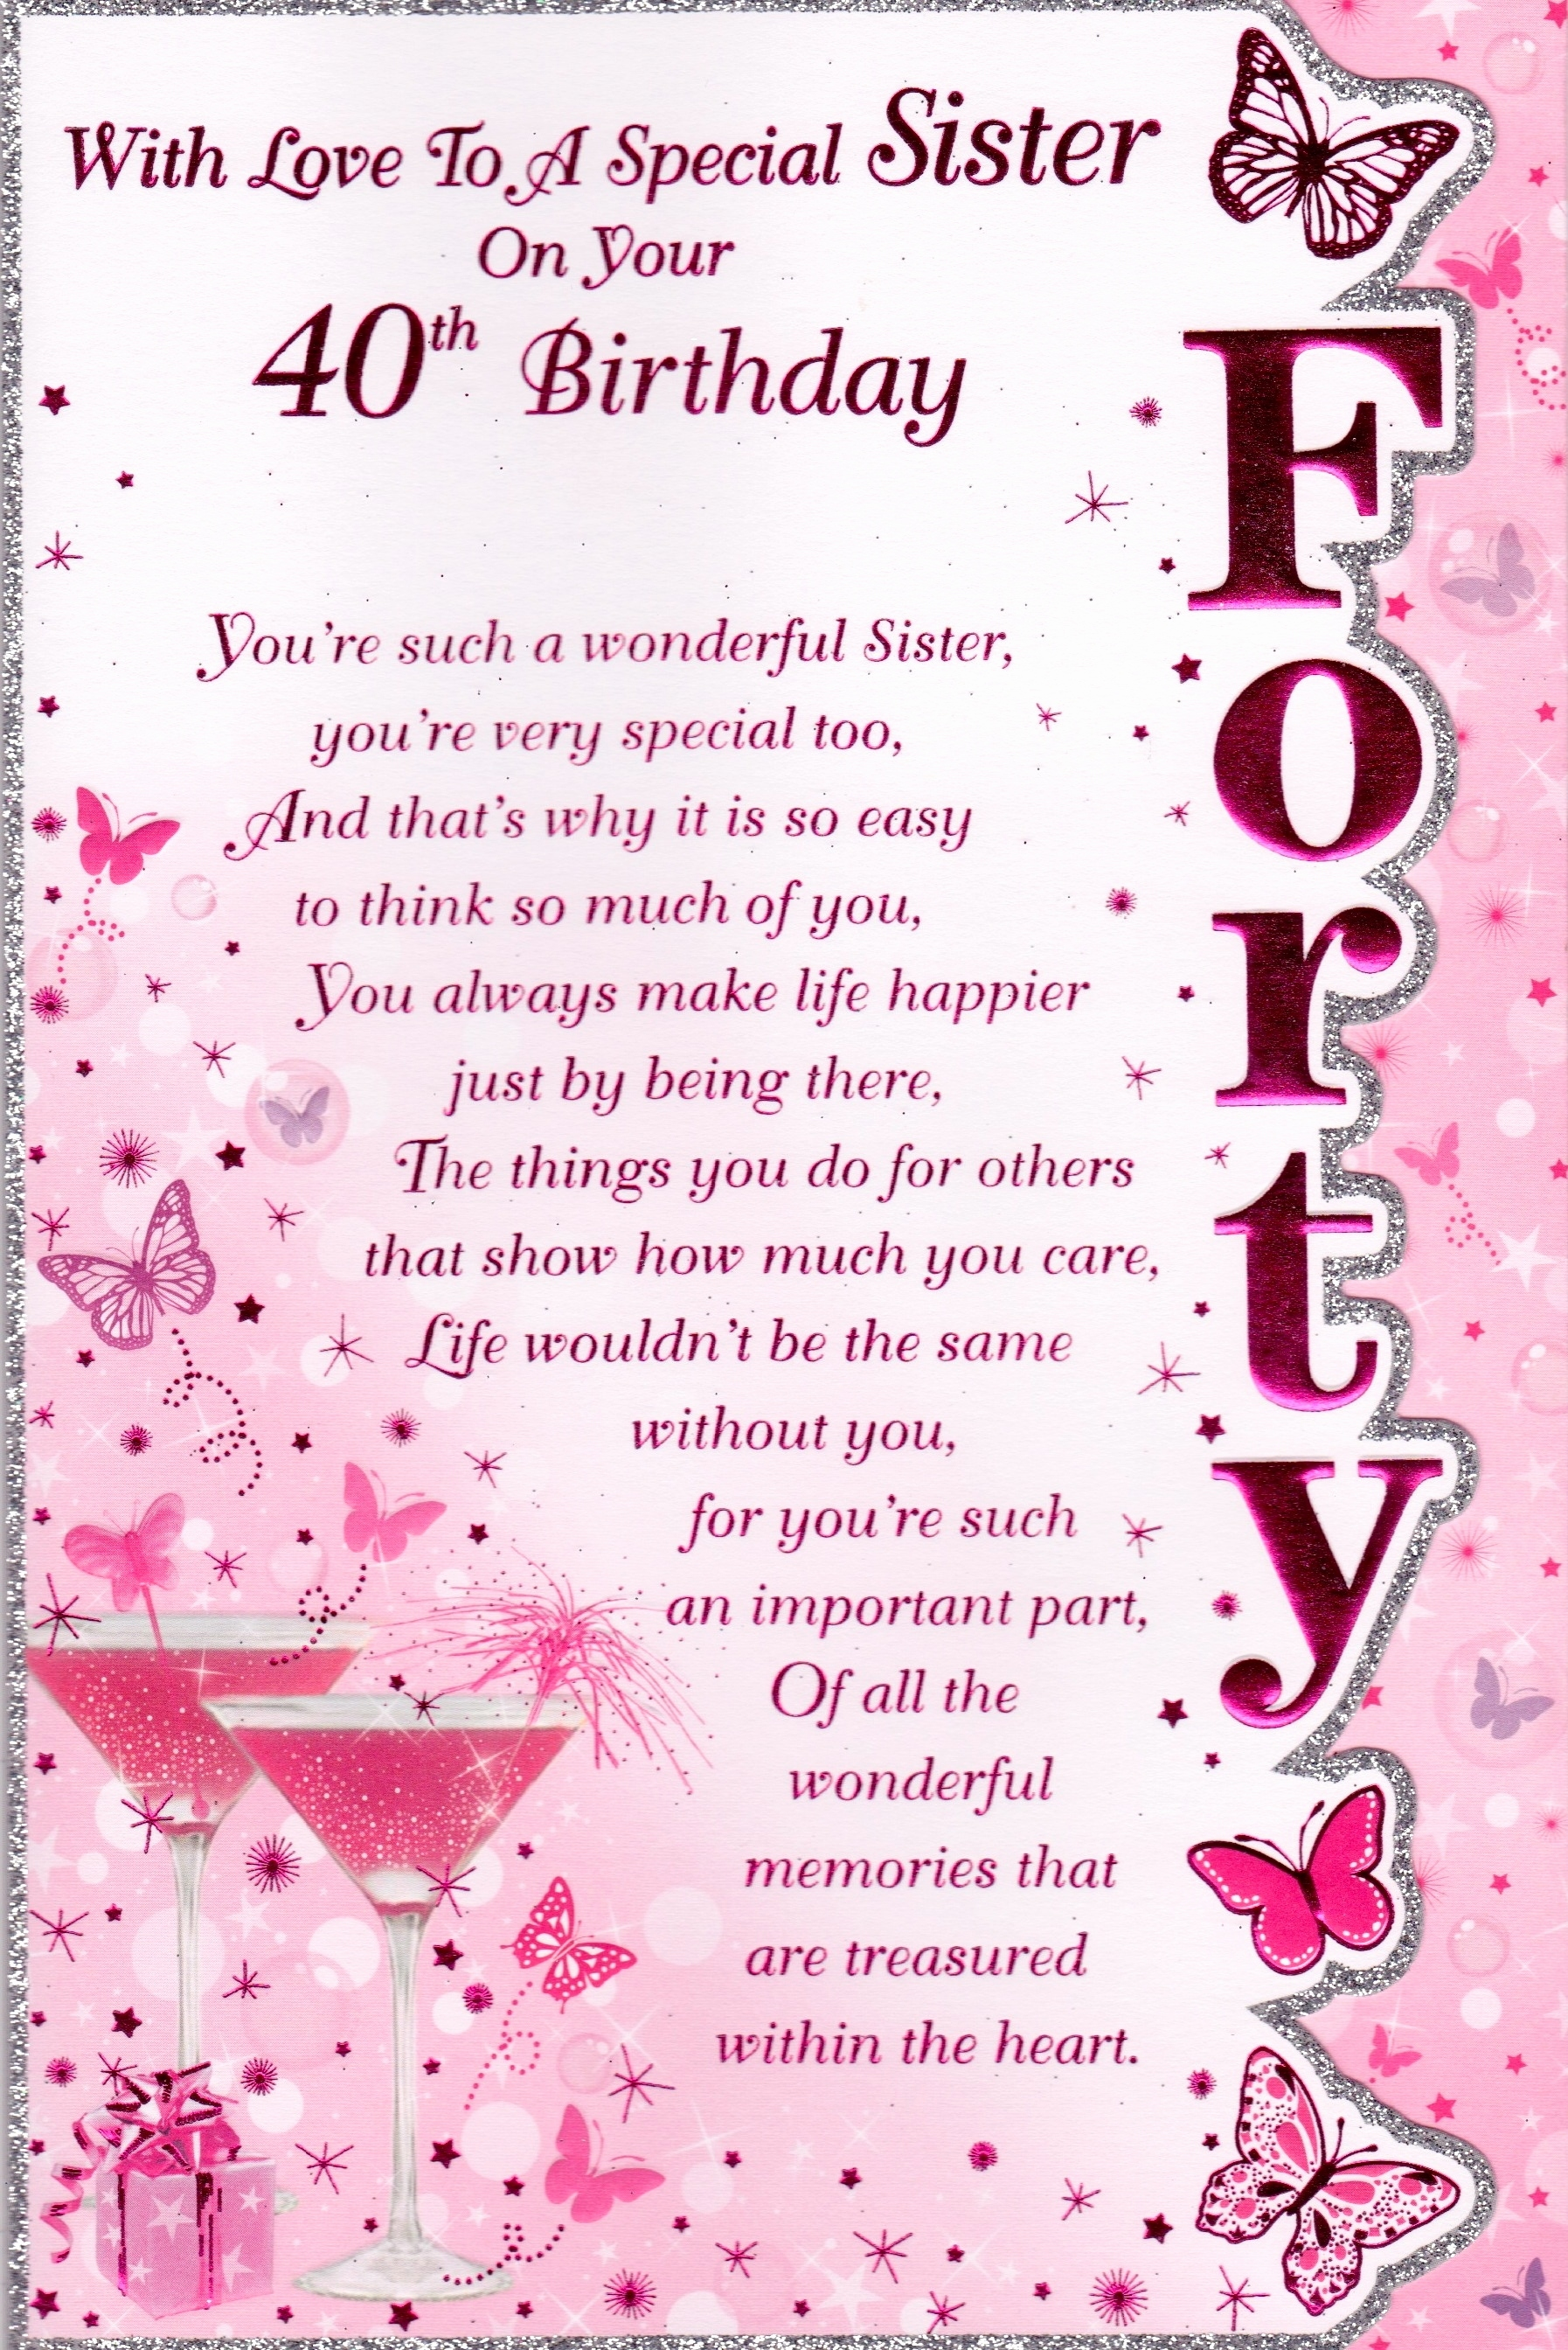 happy 40th birthday quotes ; 40-year-old-birthday-jokes-for-cards-best-of-happiness-quotes-glamorous-happy-40th-birthday-quotes-happy-40th-of-40-year-old-birthday-jokes-for-cards